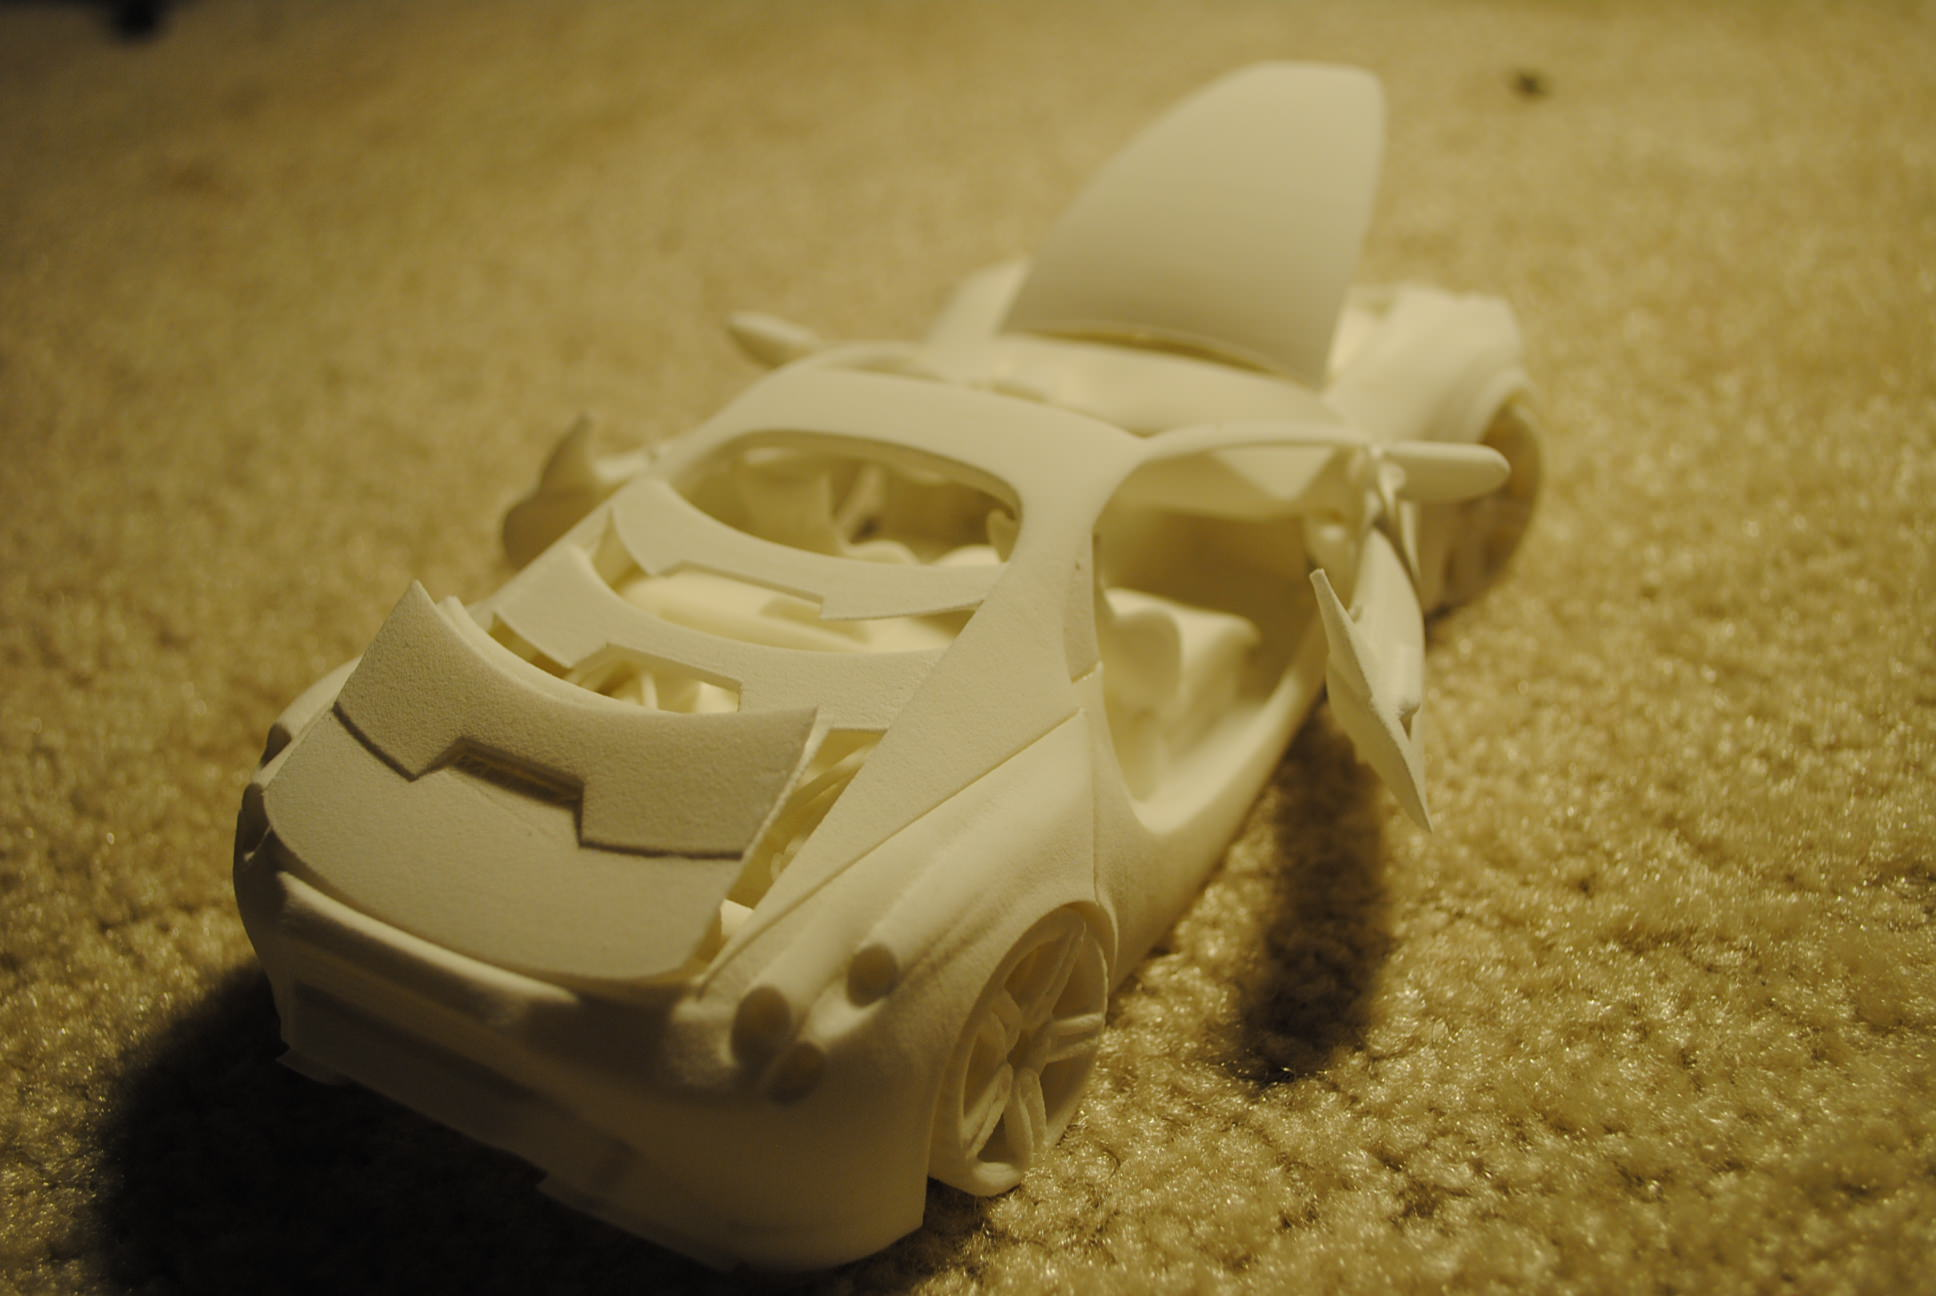 3d printable car with movable doors hoods free 3d